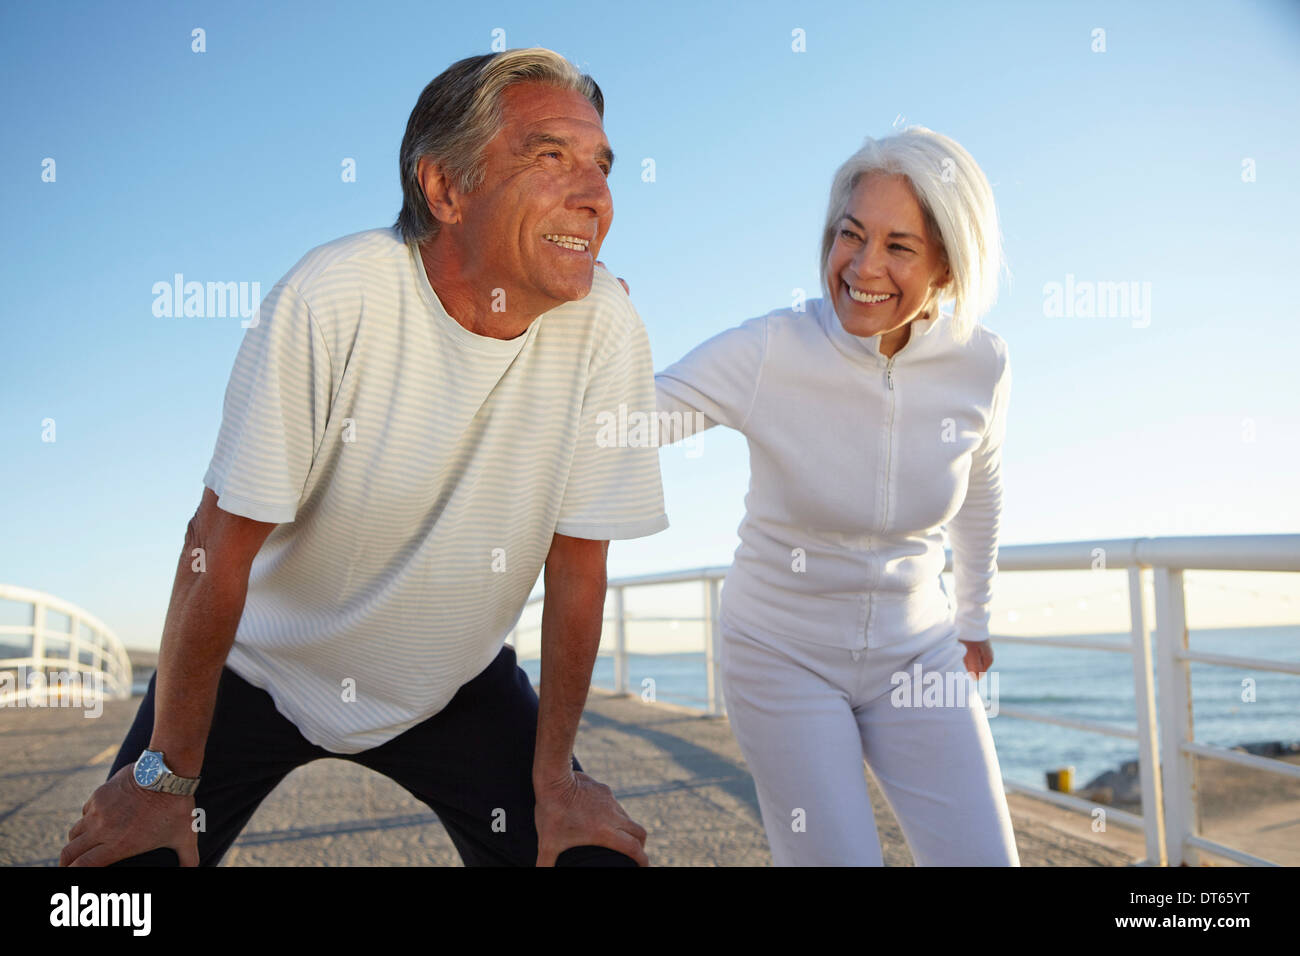 Couple doing squatting exercise - Stock Image